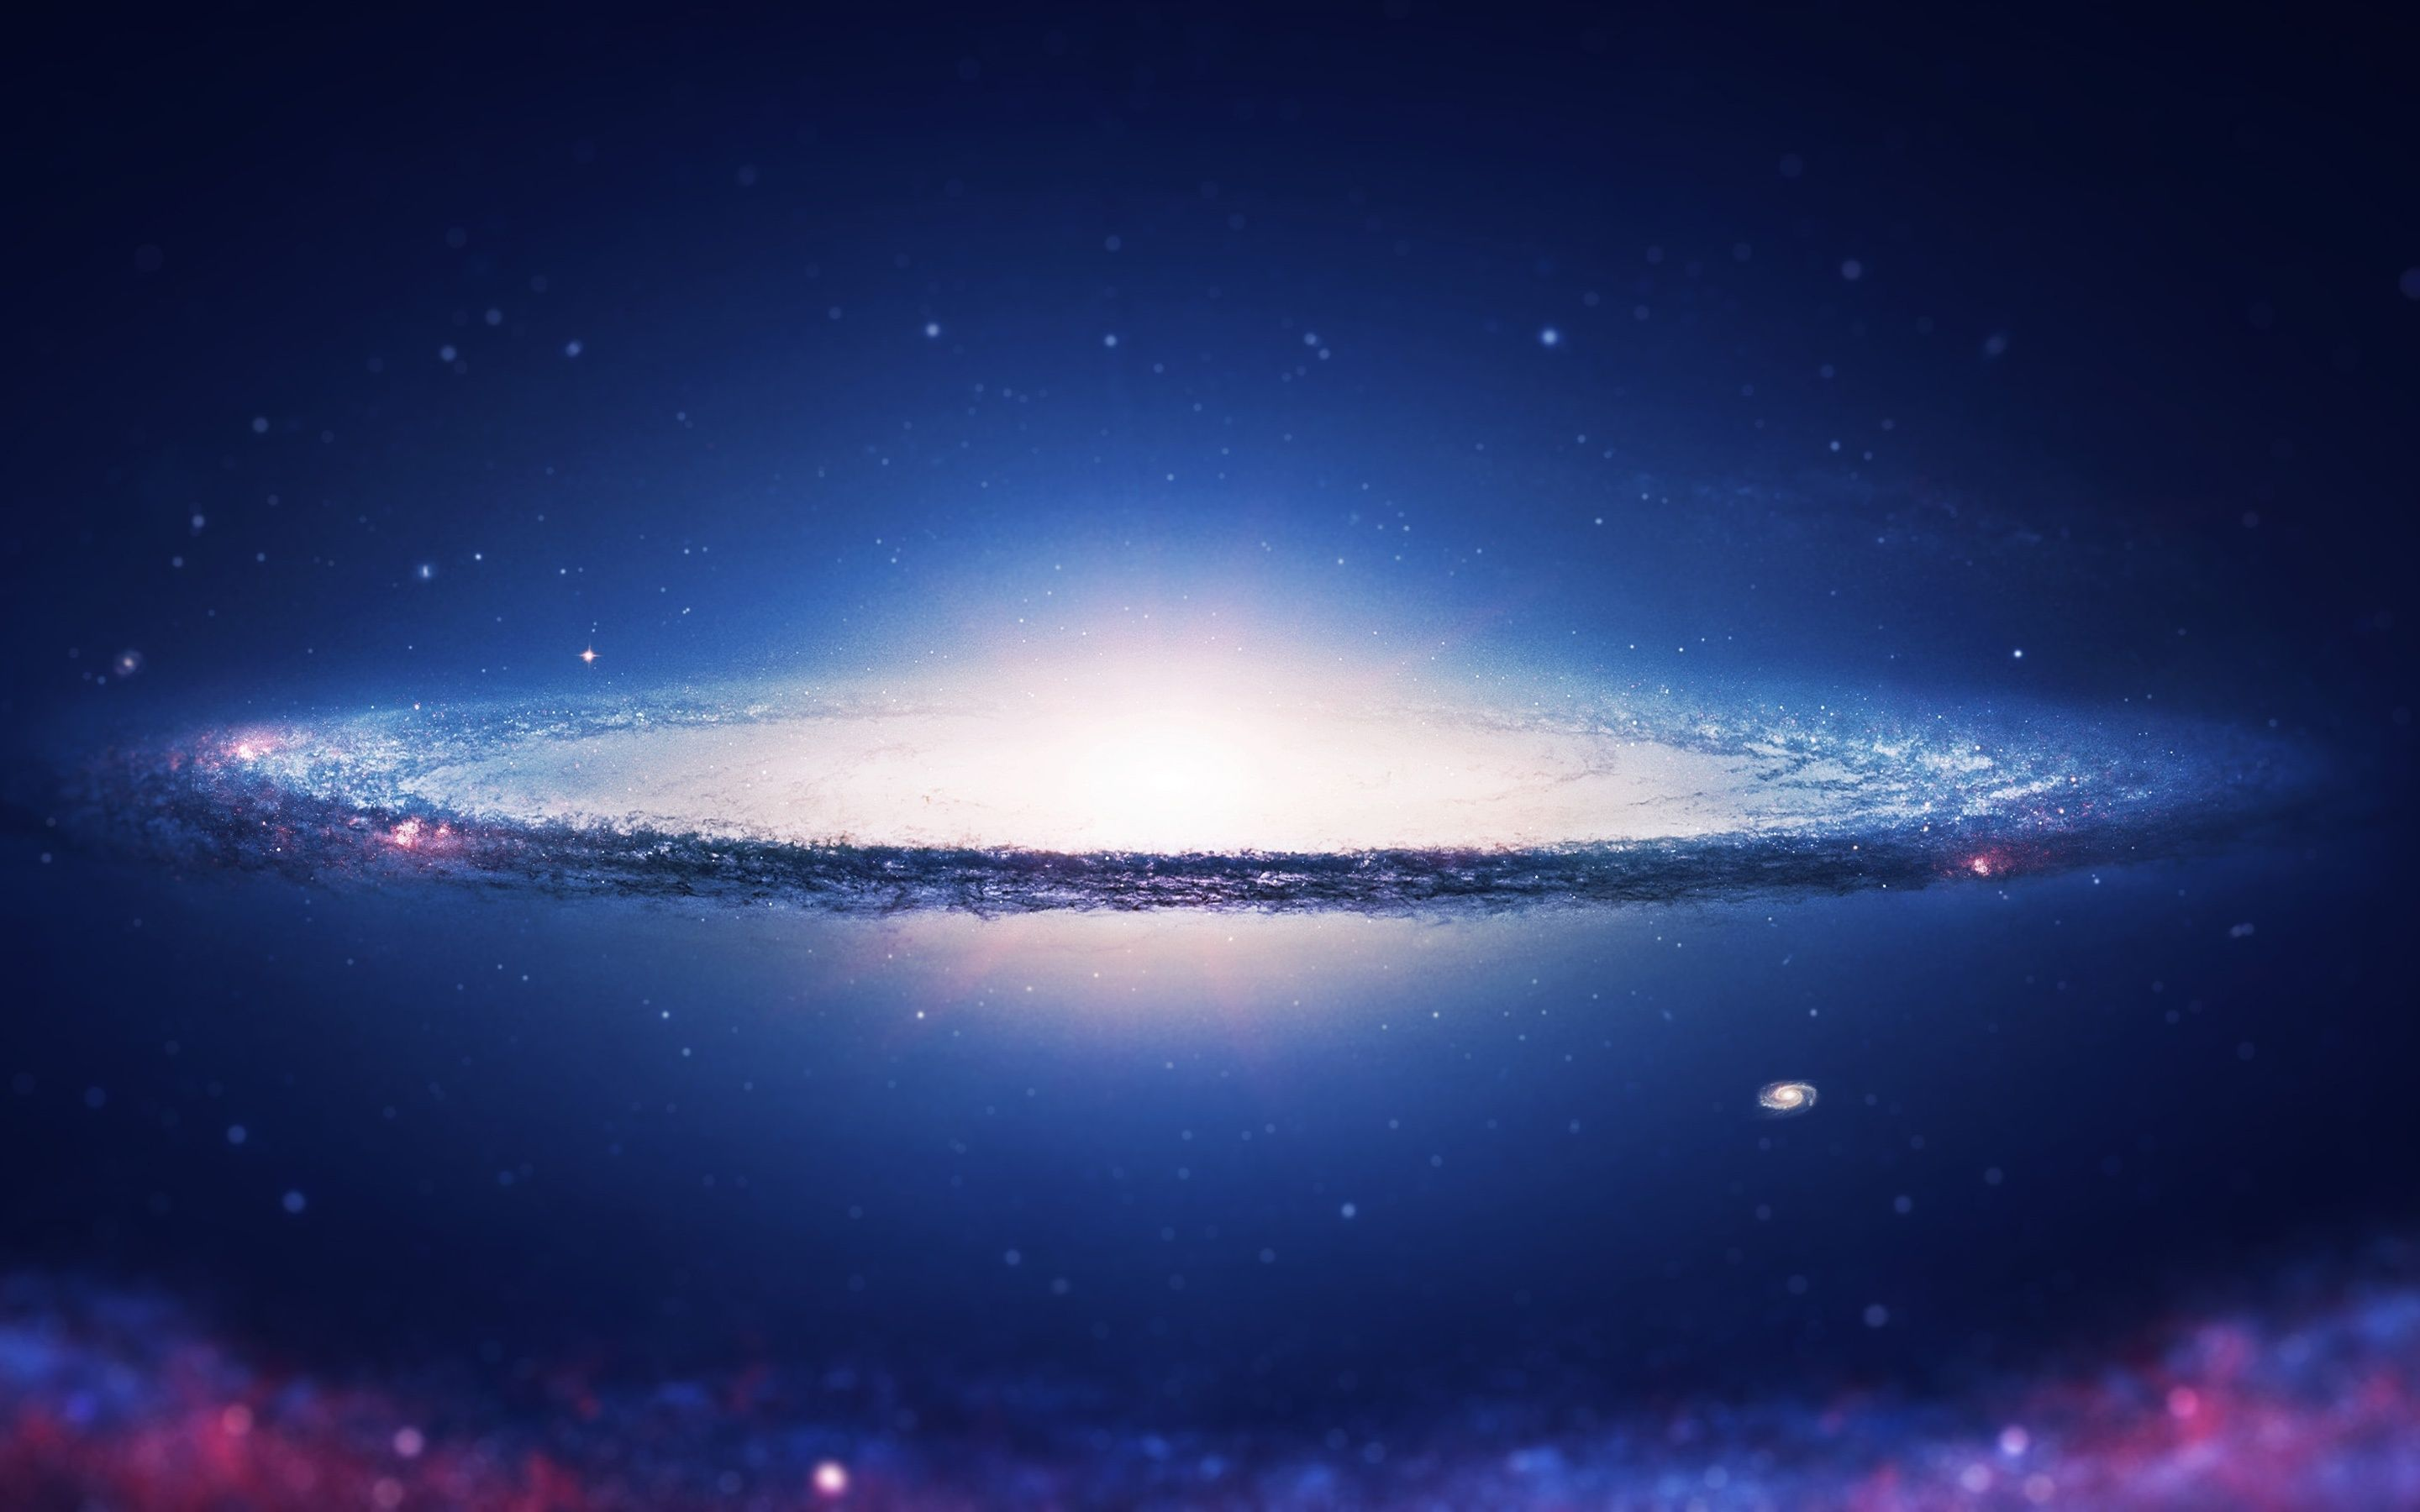 Universo 4k Hd Galaxy Wallpaper Galaxy Wallpaper Wallpaper Space